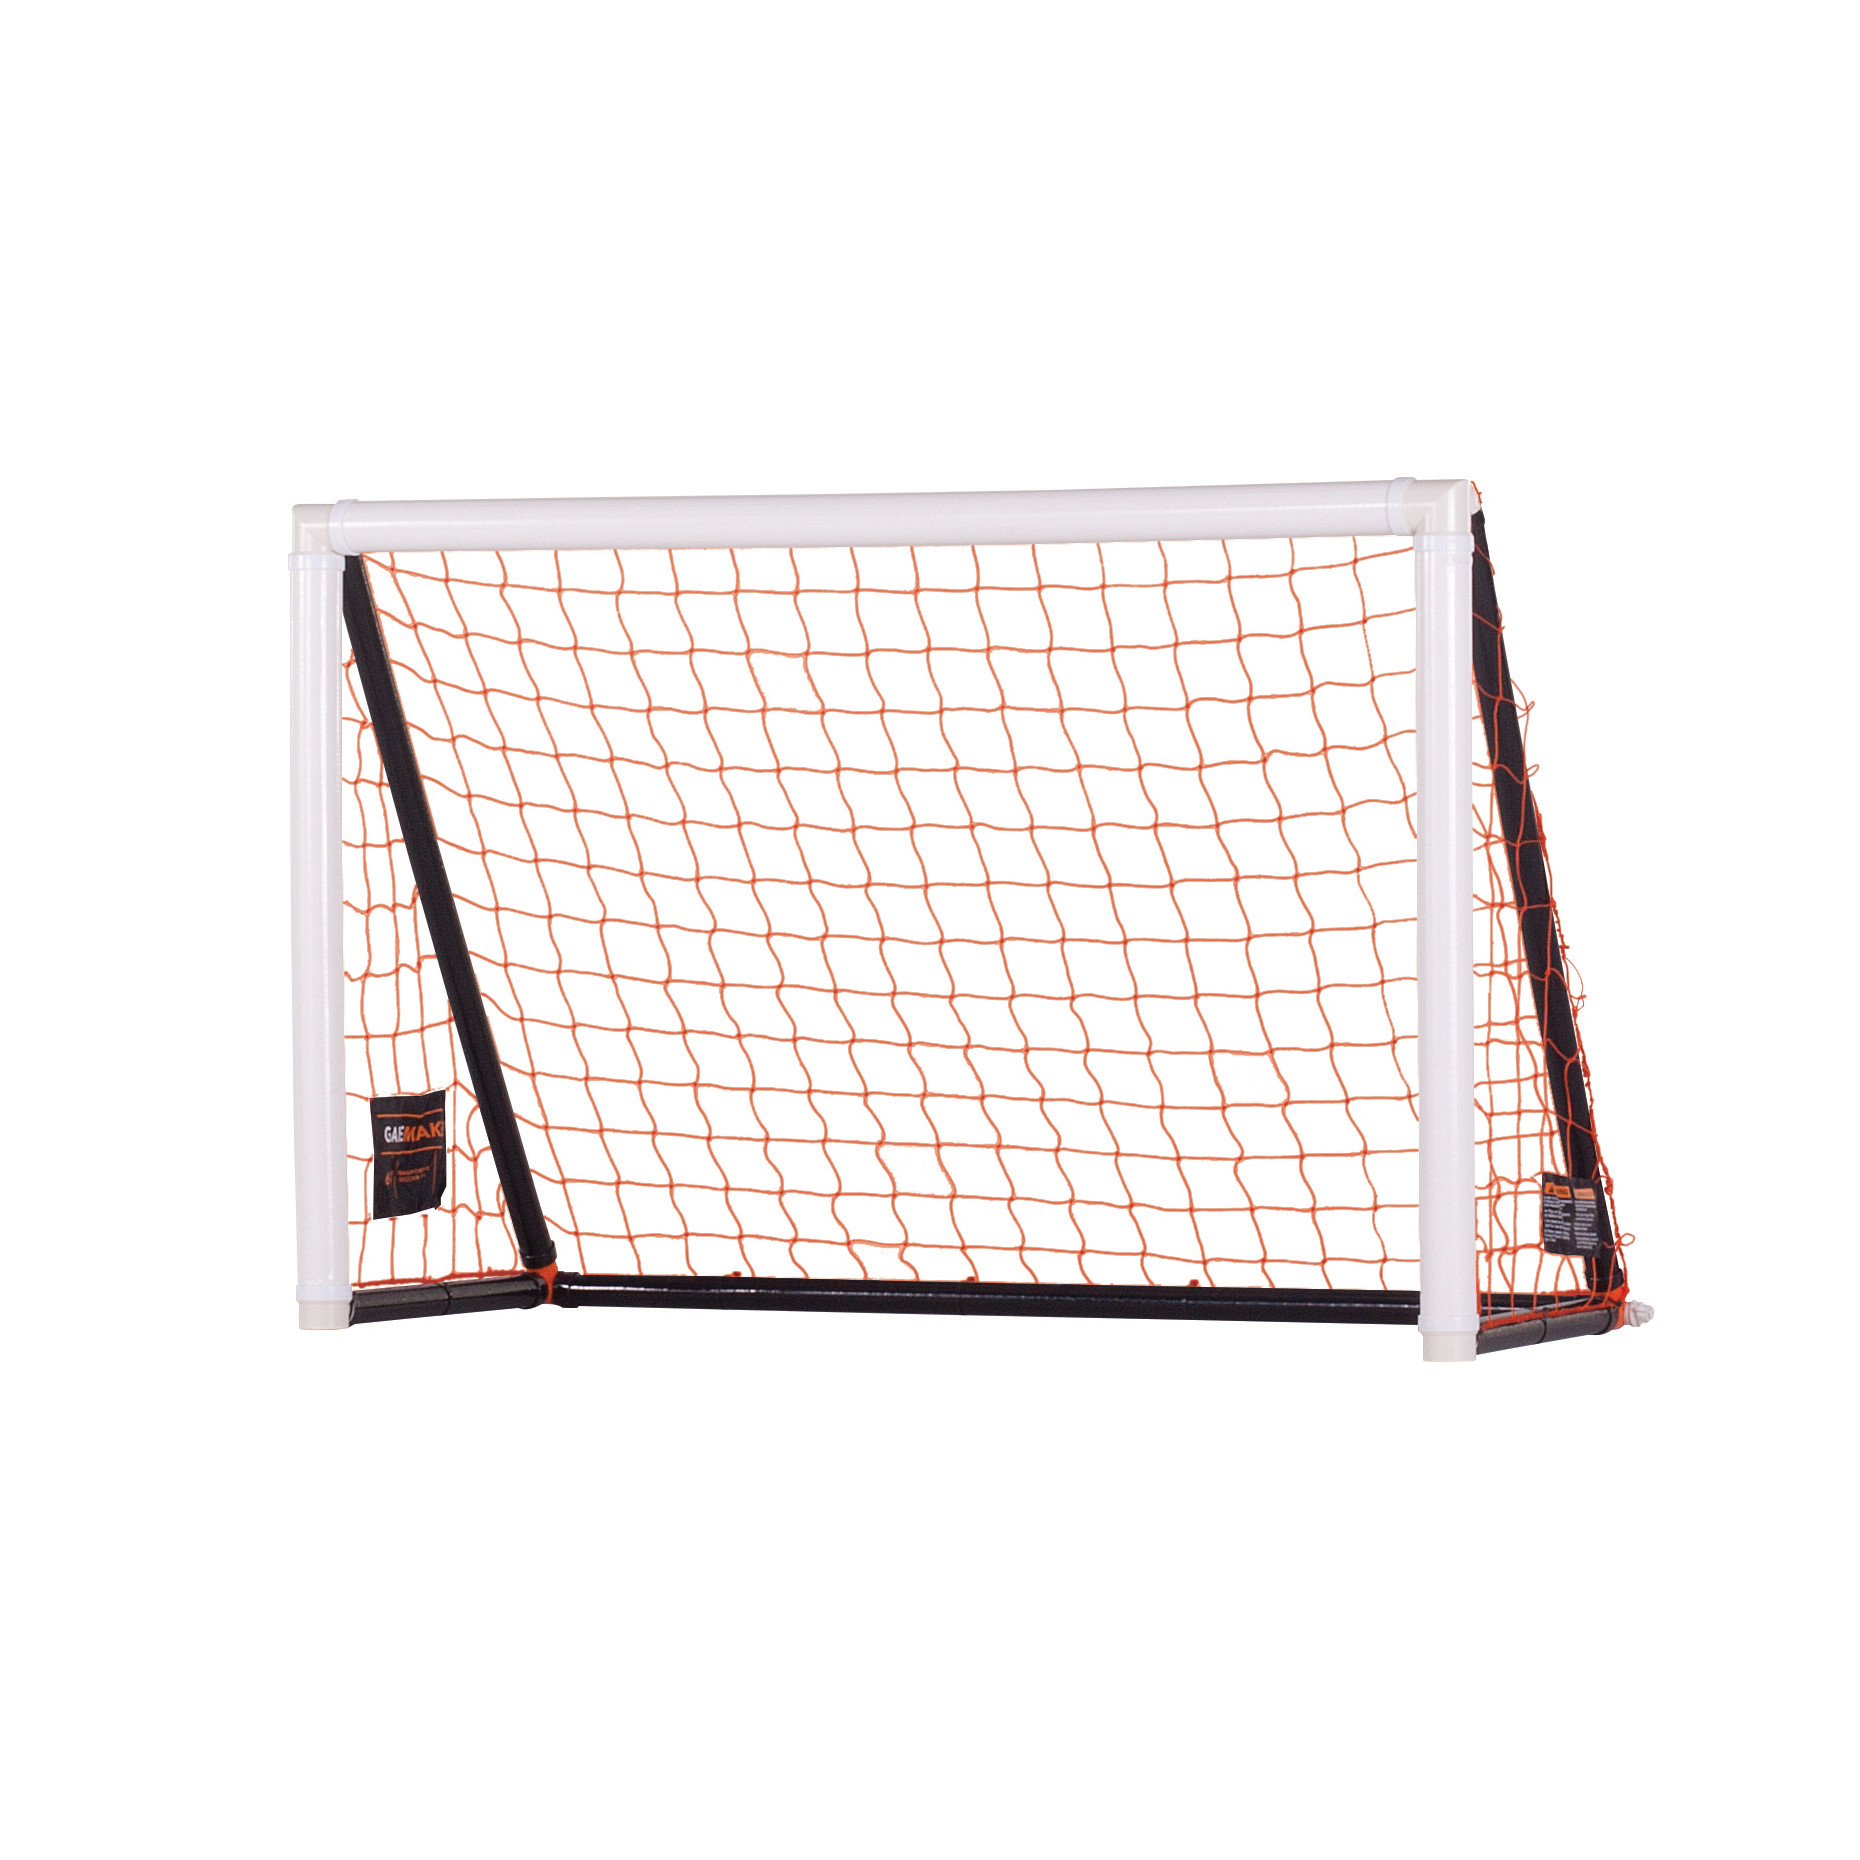 Goalrilla Gamemaker Inflatable Soccer Goal with Carry Case